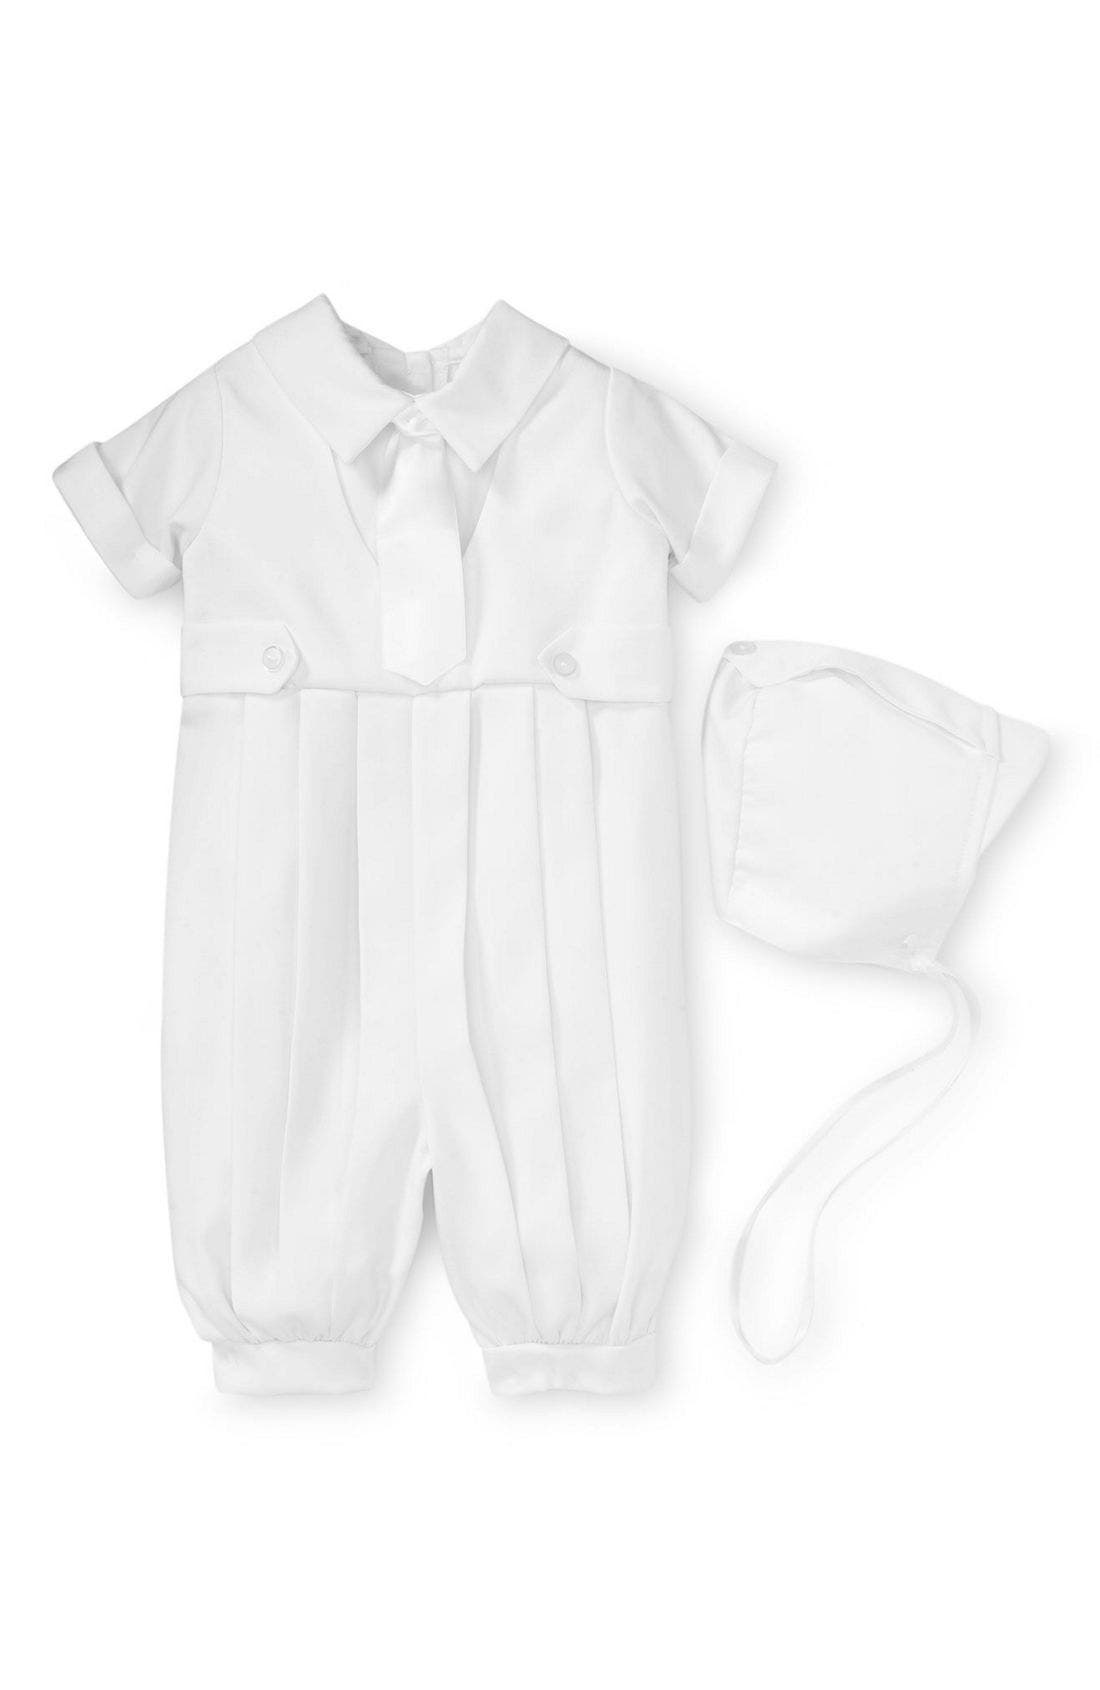 Little Things Mean a Lot Gabardine Christening Romper (Baby)